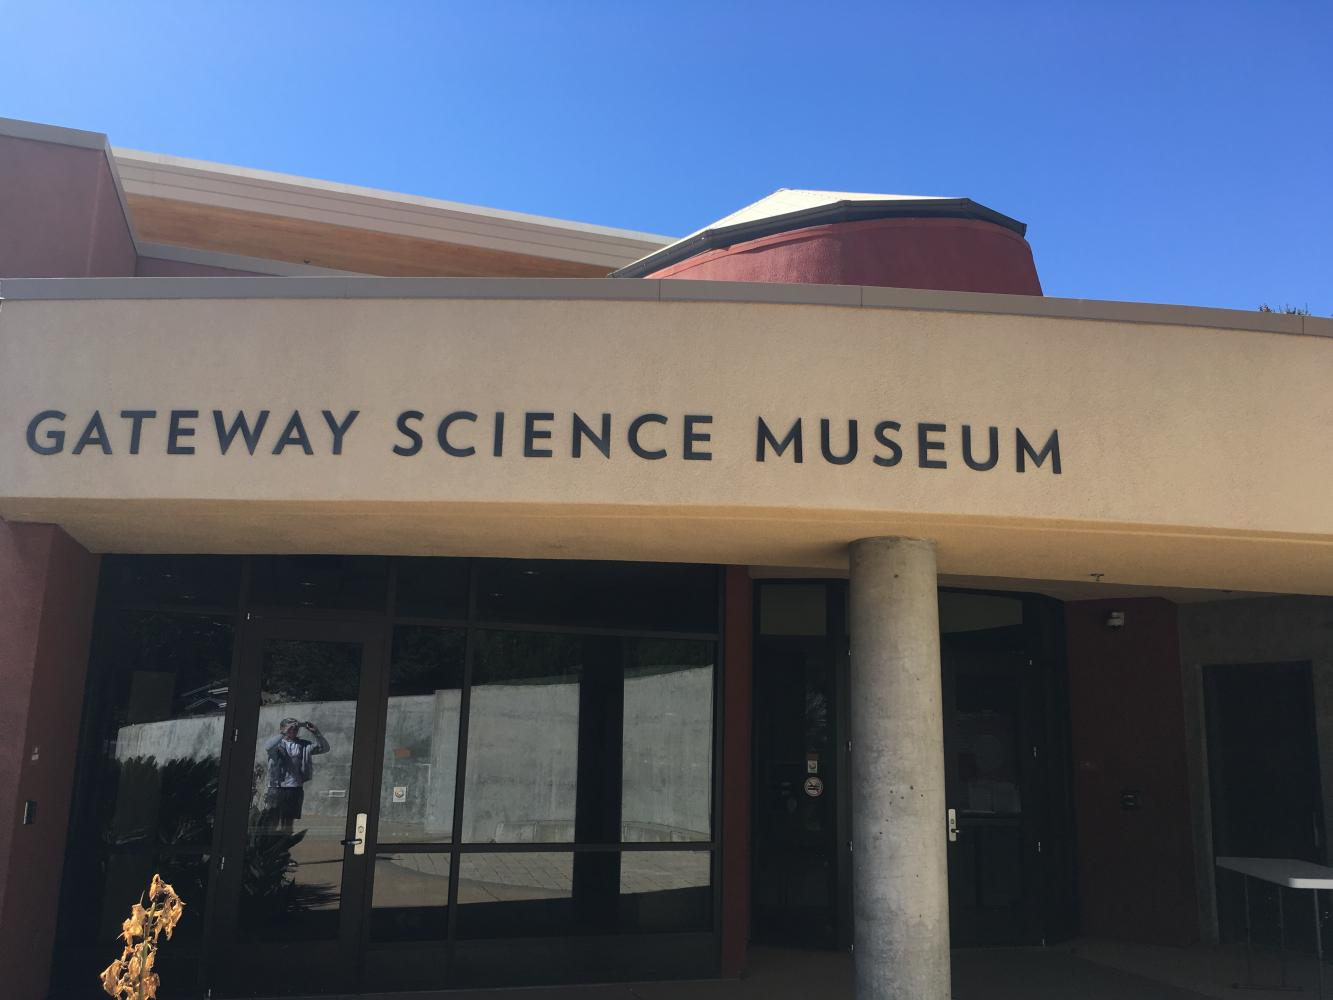 New exhibits open at the Gateway Science Museum